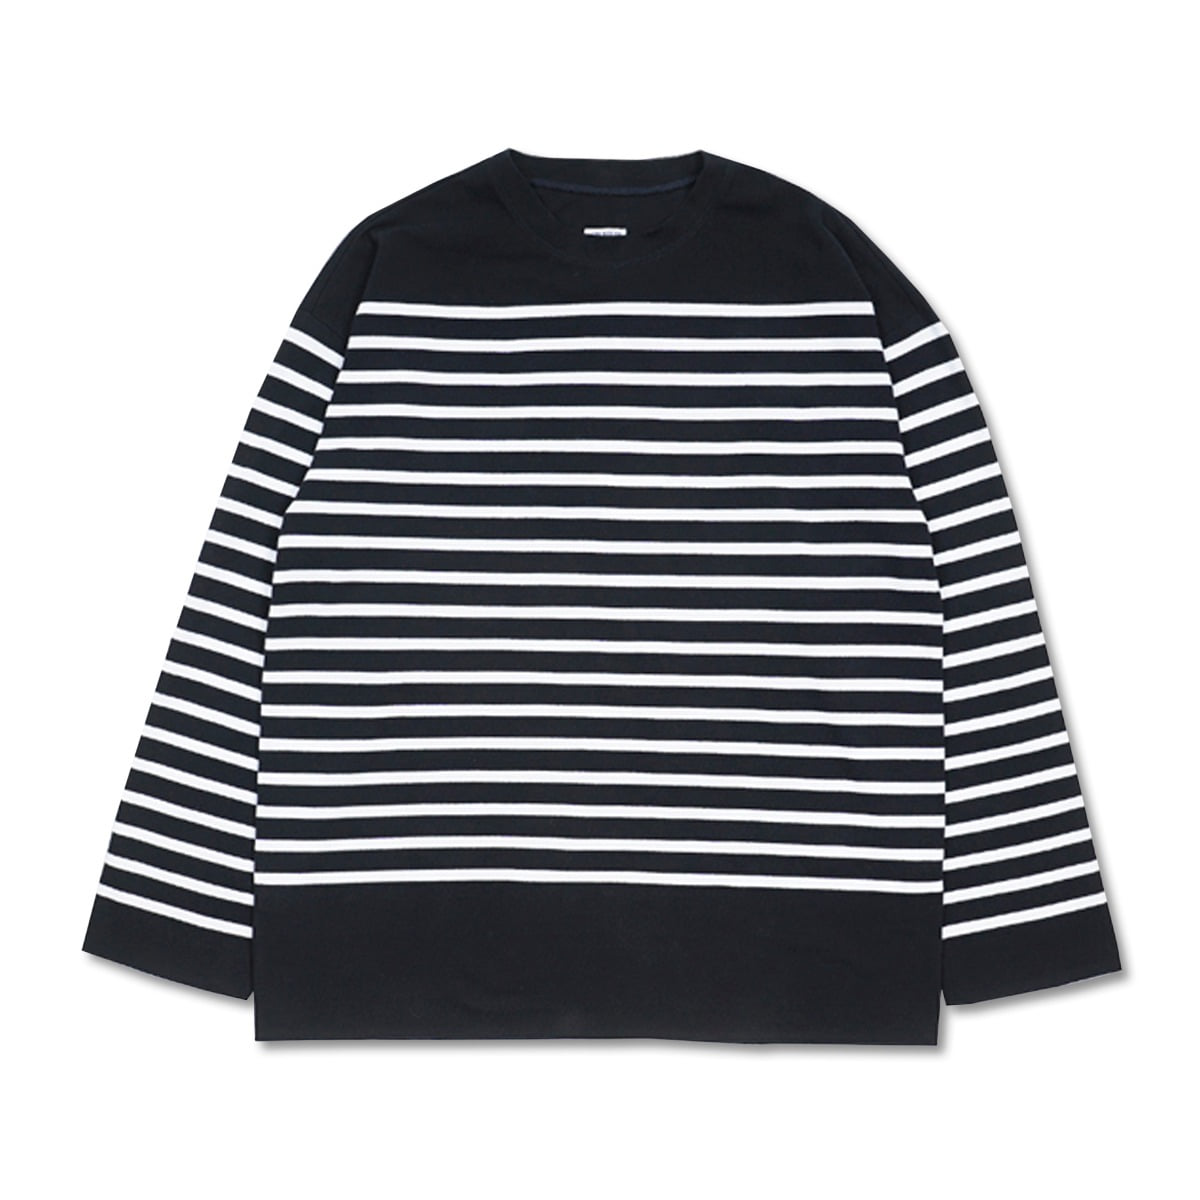 [ARPENTEUR] MARINE RACHEL COTTON MESH LONG SLEEVE T-SHIRT 'DARK NAVY/WHITE'